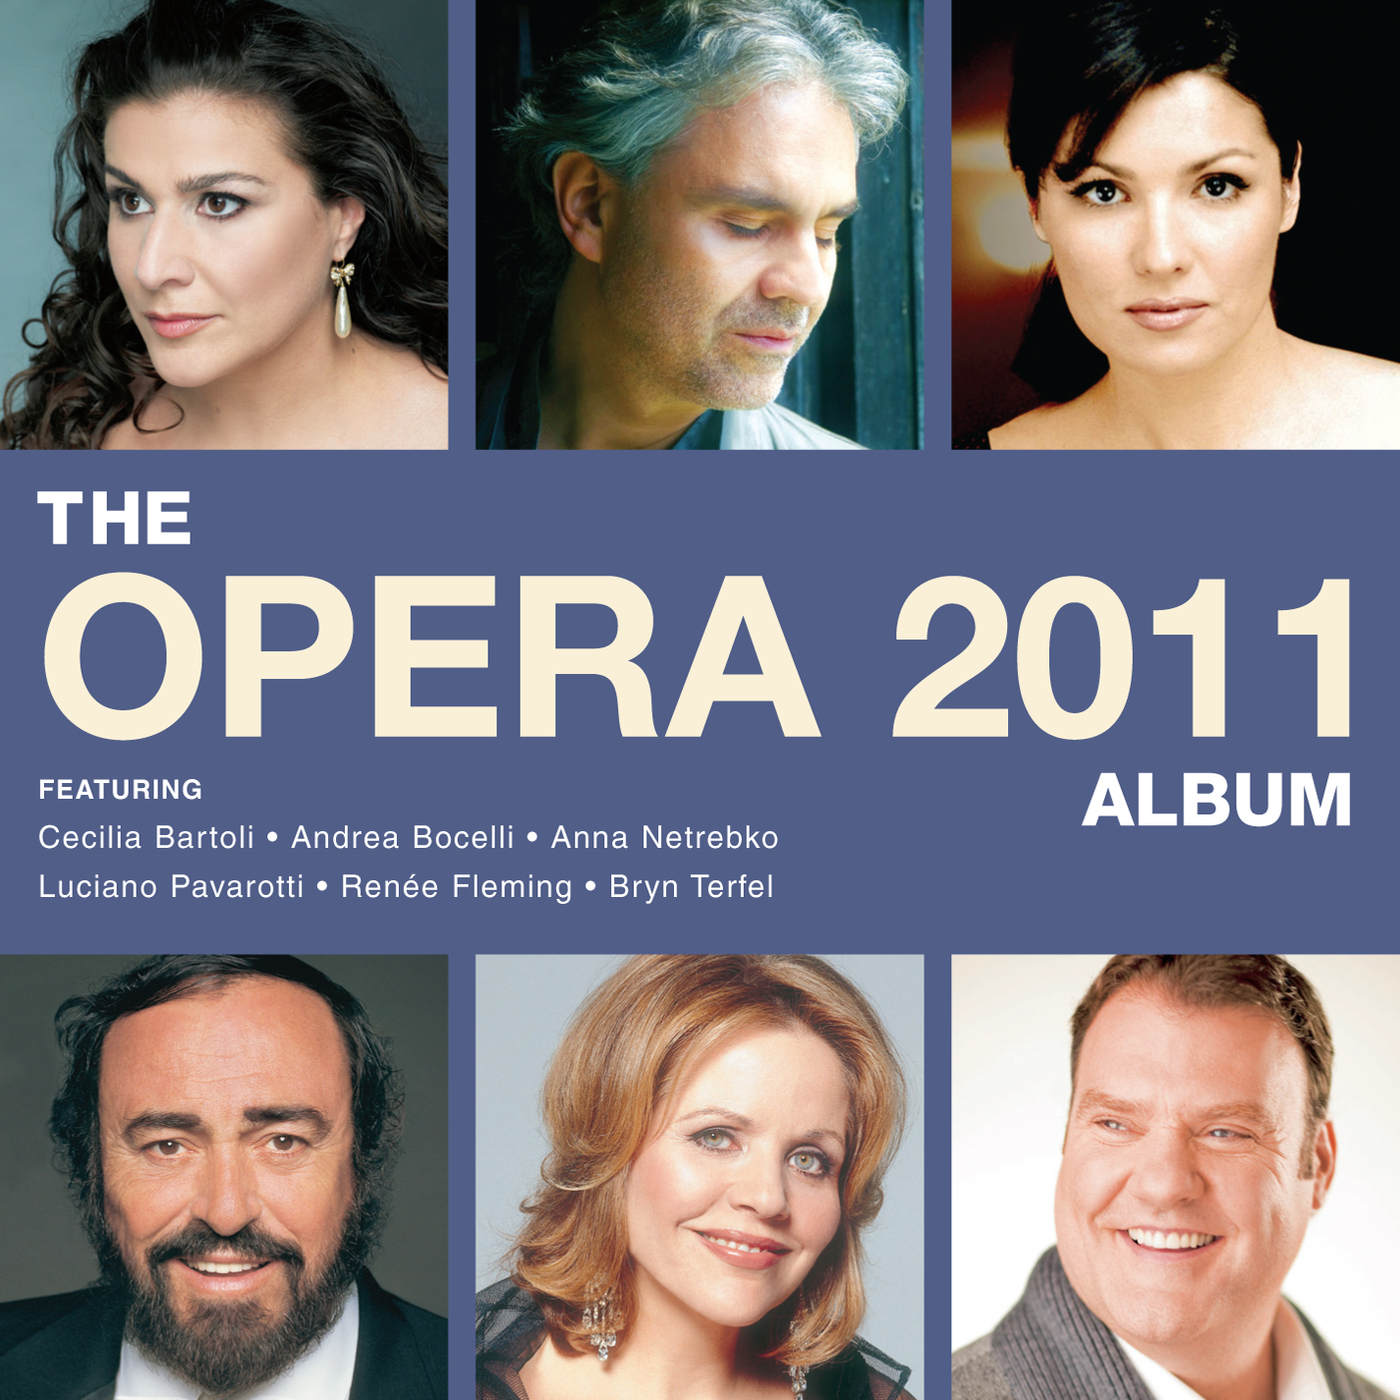 Anna Netrebko Radio: Listen to Free Music & Get The Latest